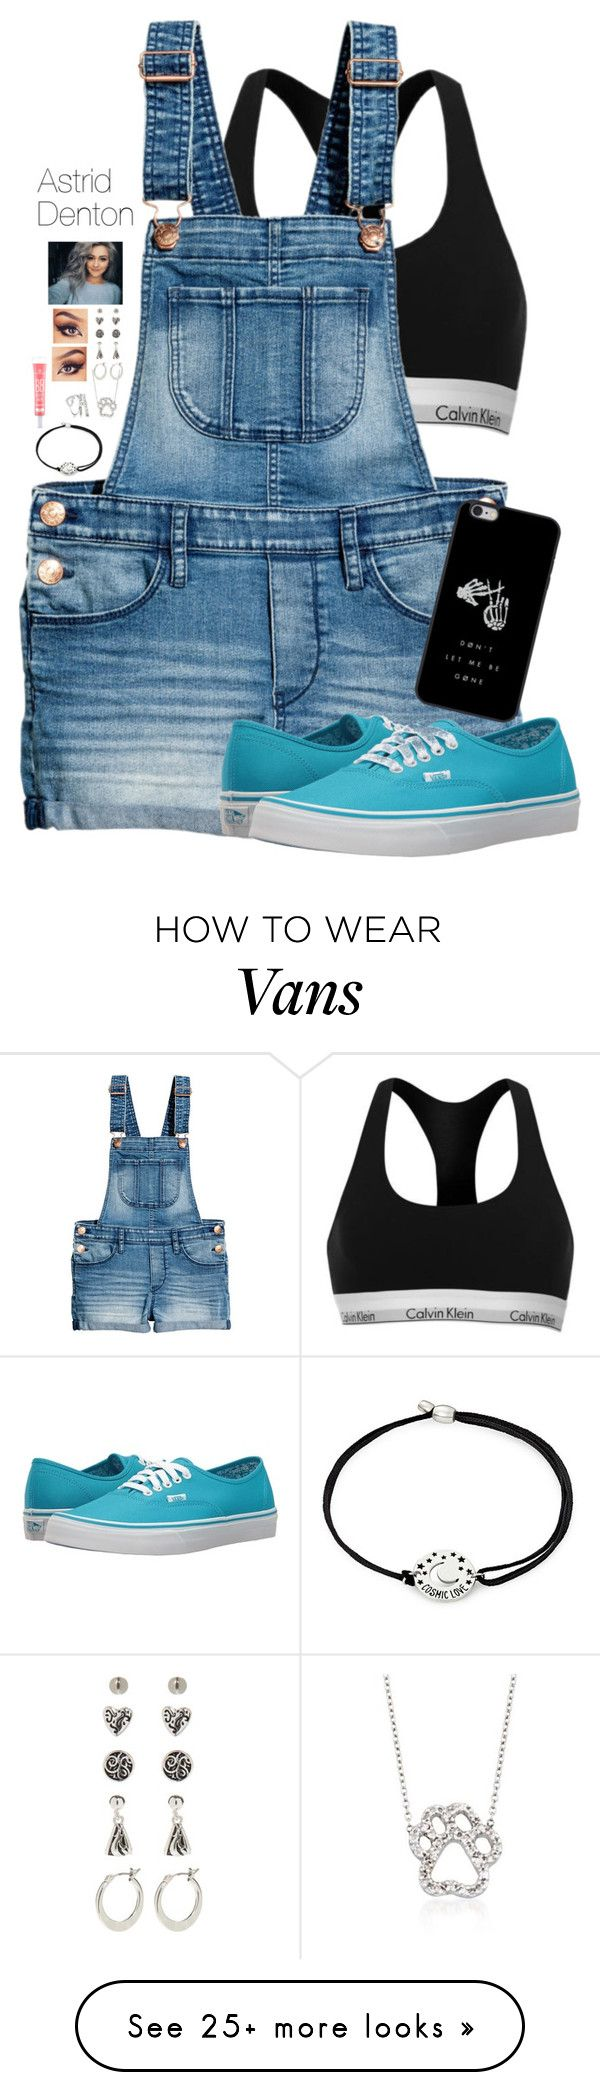 """""""Astrid Denton \\\ Played by Kimmy Schram"""" by directioner-four-ever on Polyvore featuring Calvin Klein, Vans, Alex and Ani, Ross-Simons and Kim Rogers"""